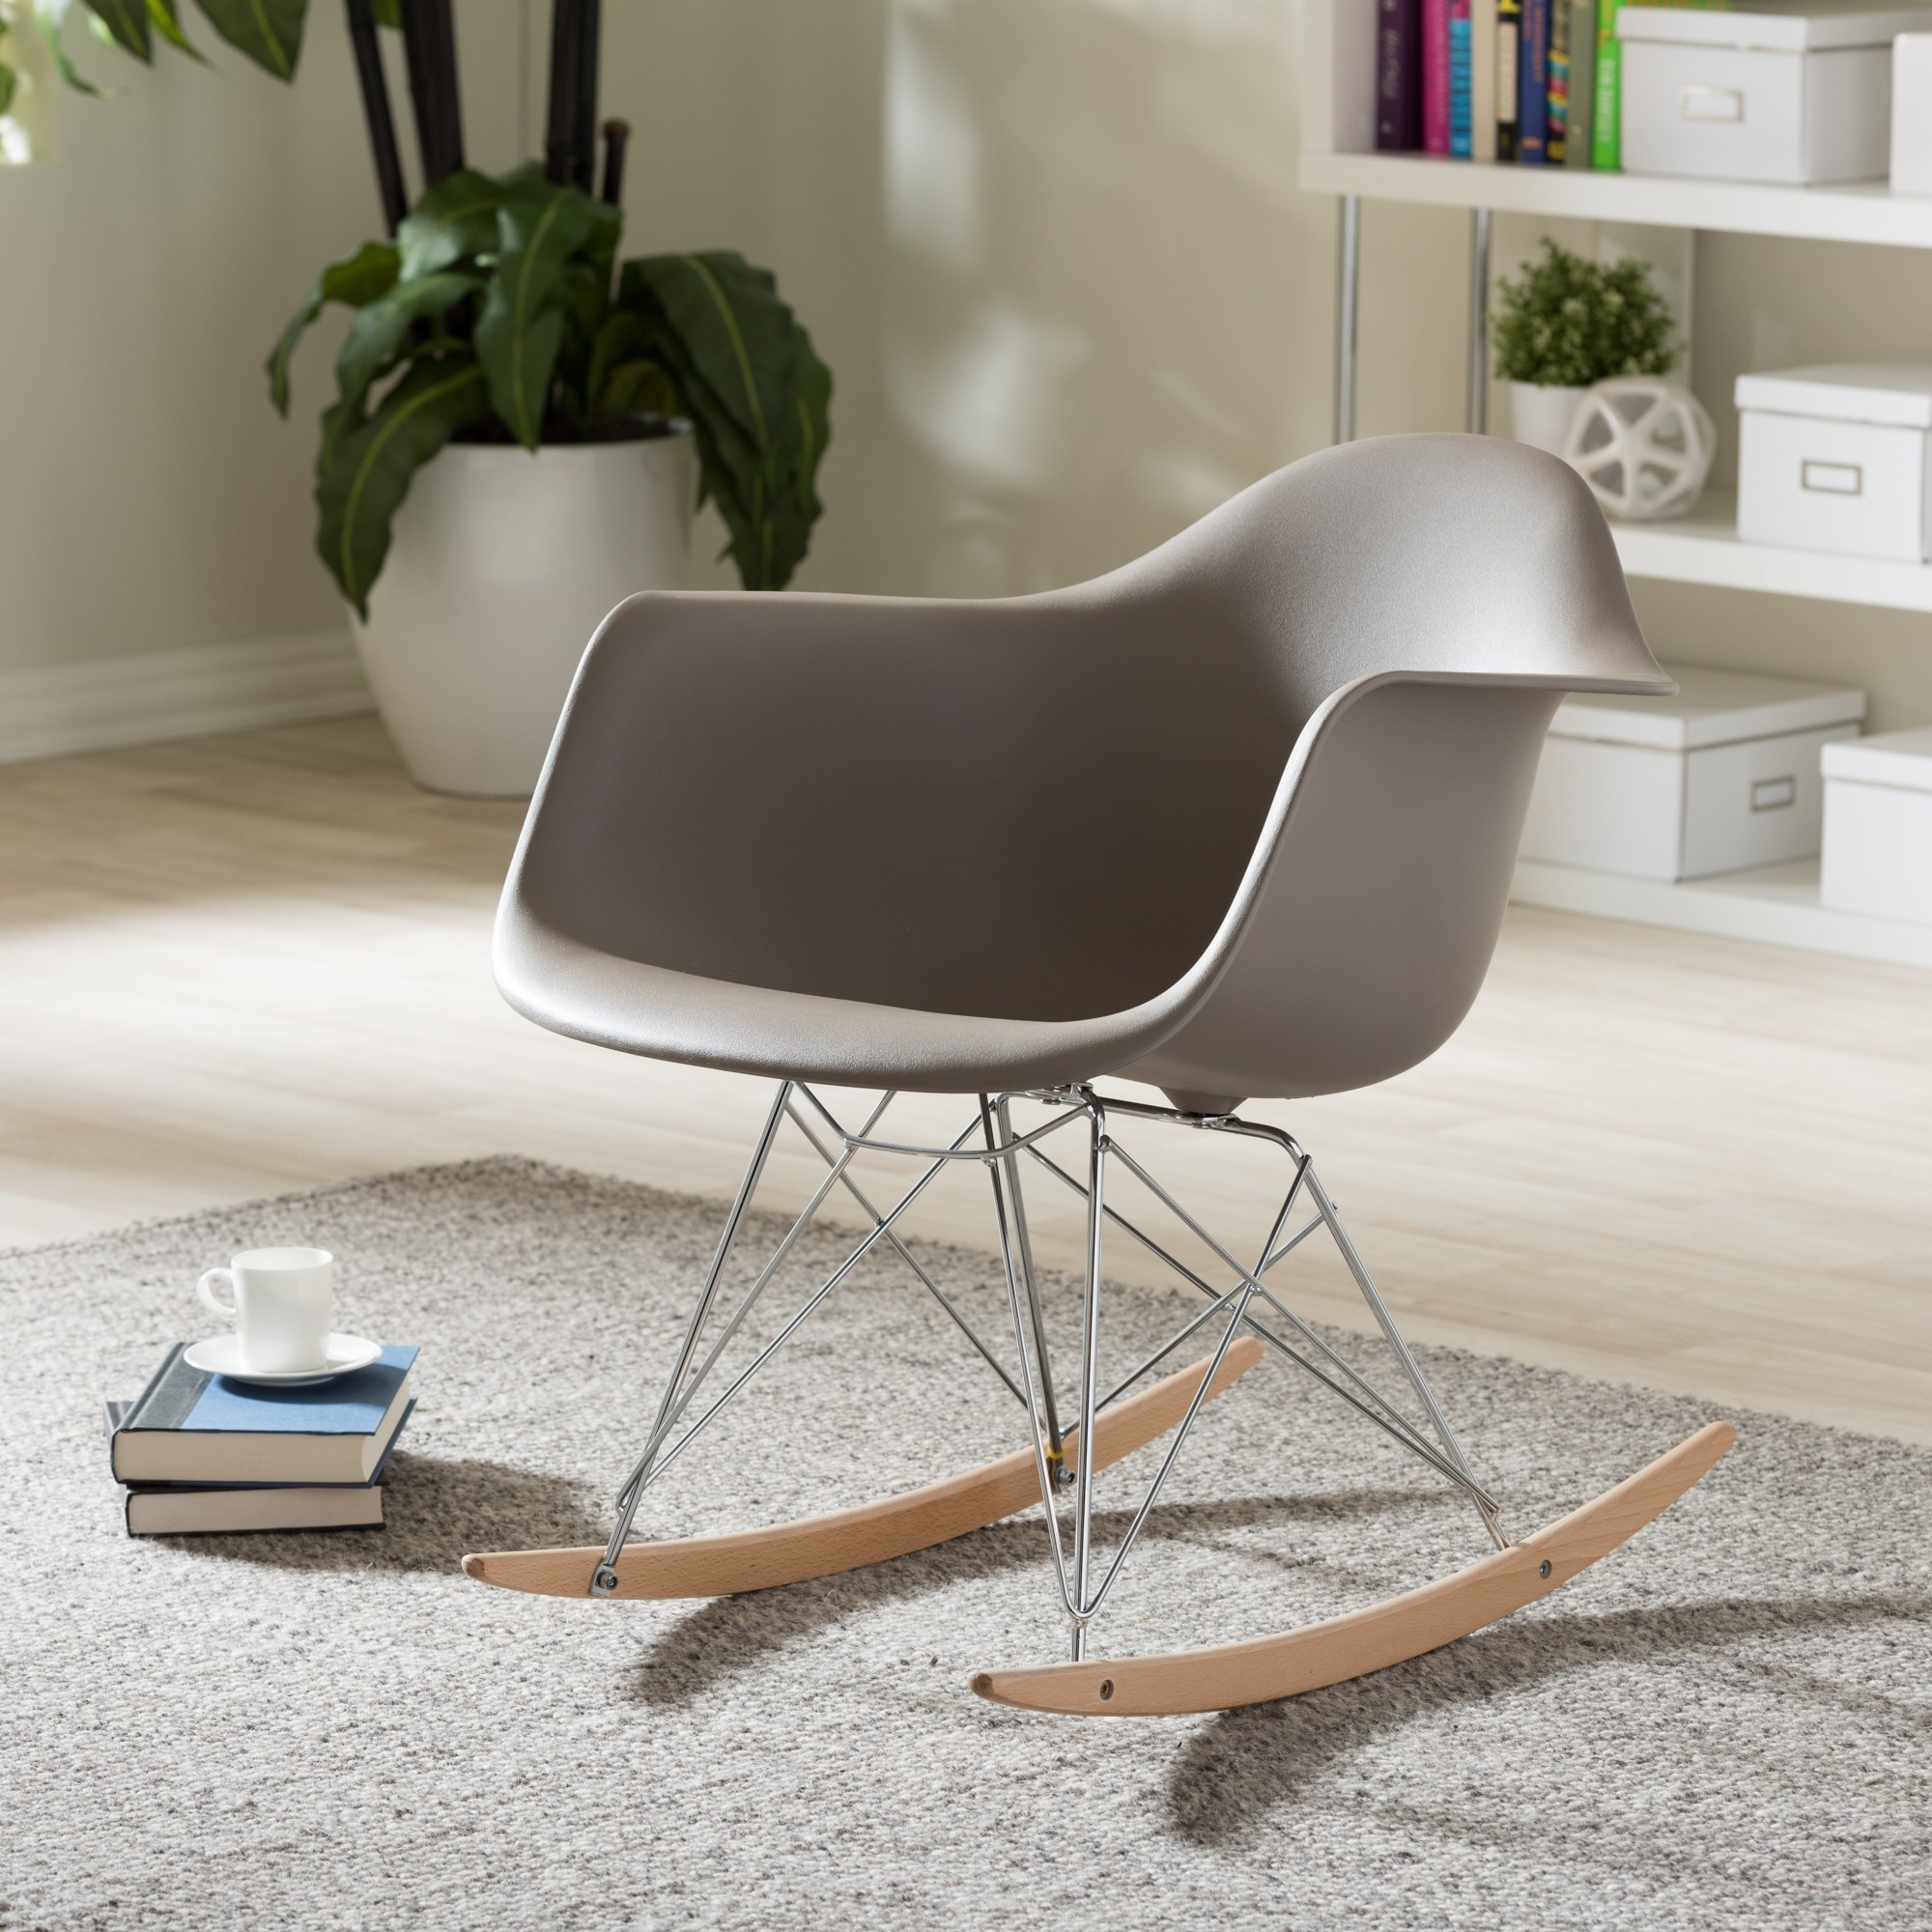 Vinnie Small White Cradle Chair Free Shipping On Orders Over 45 3351579